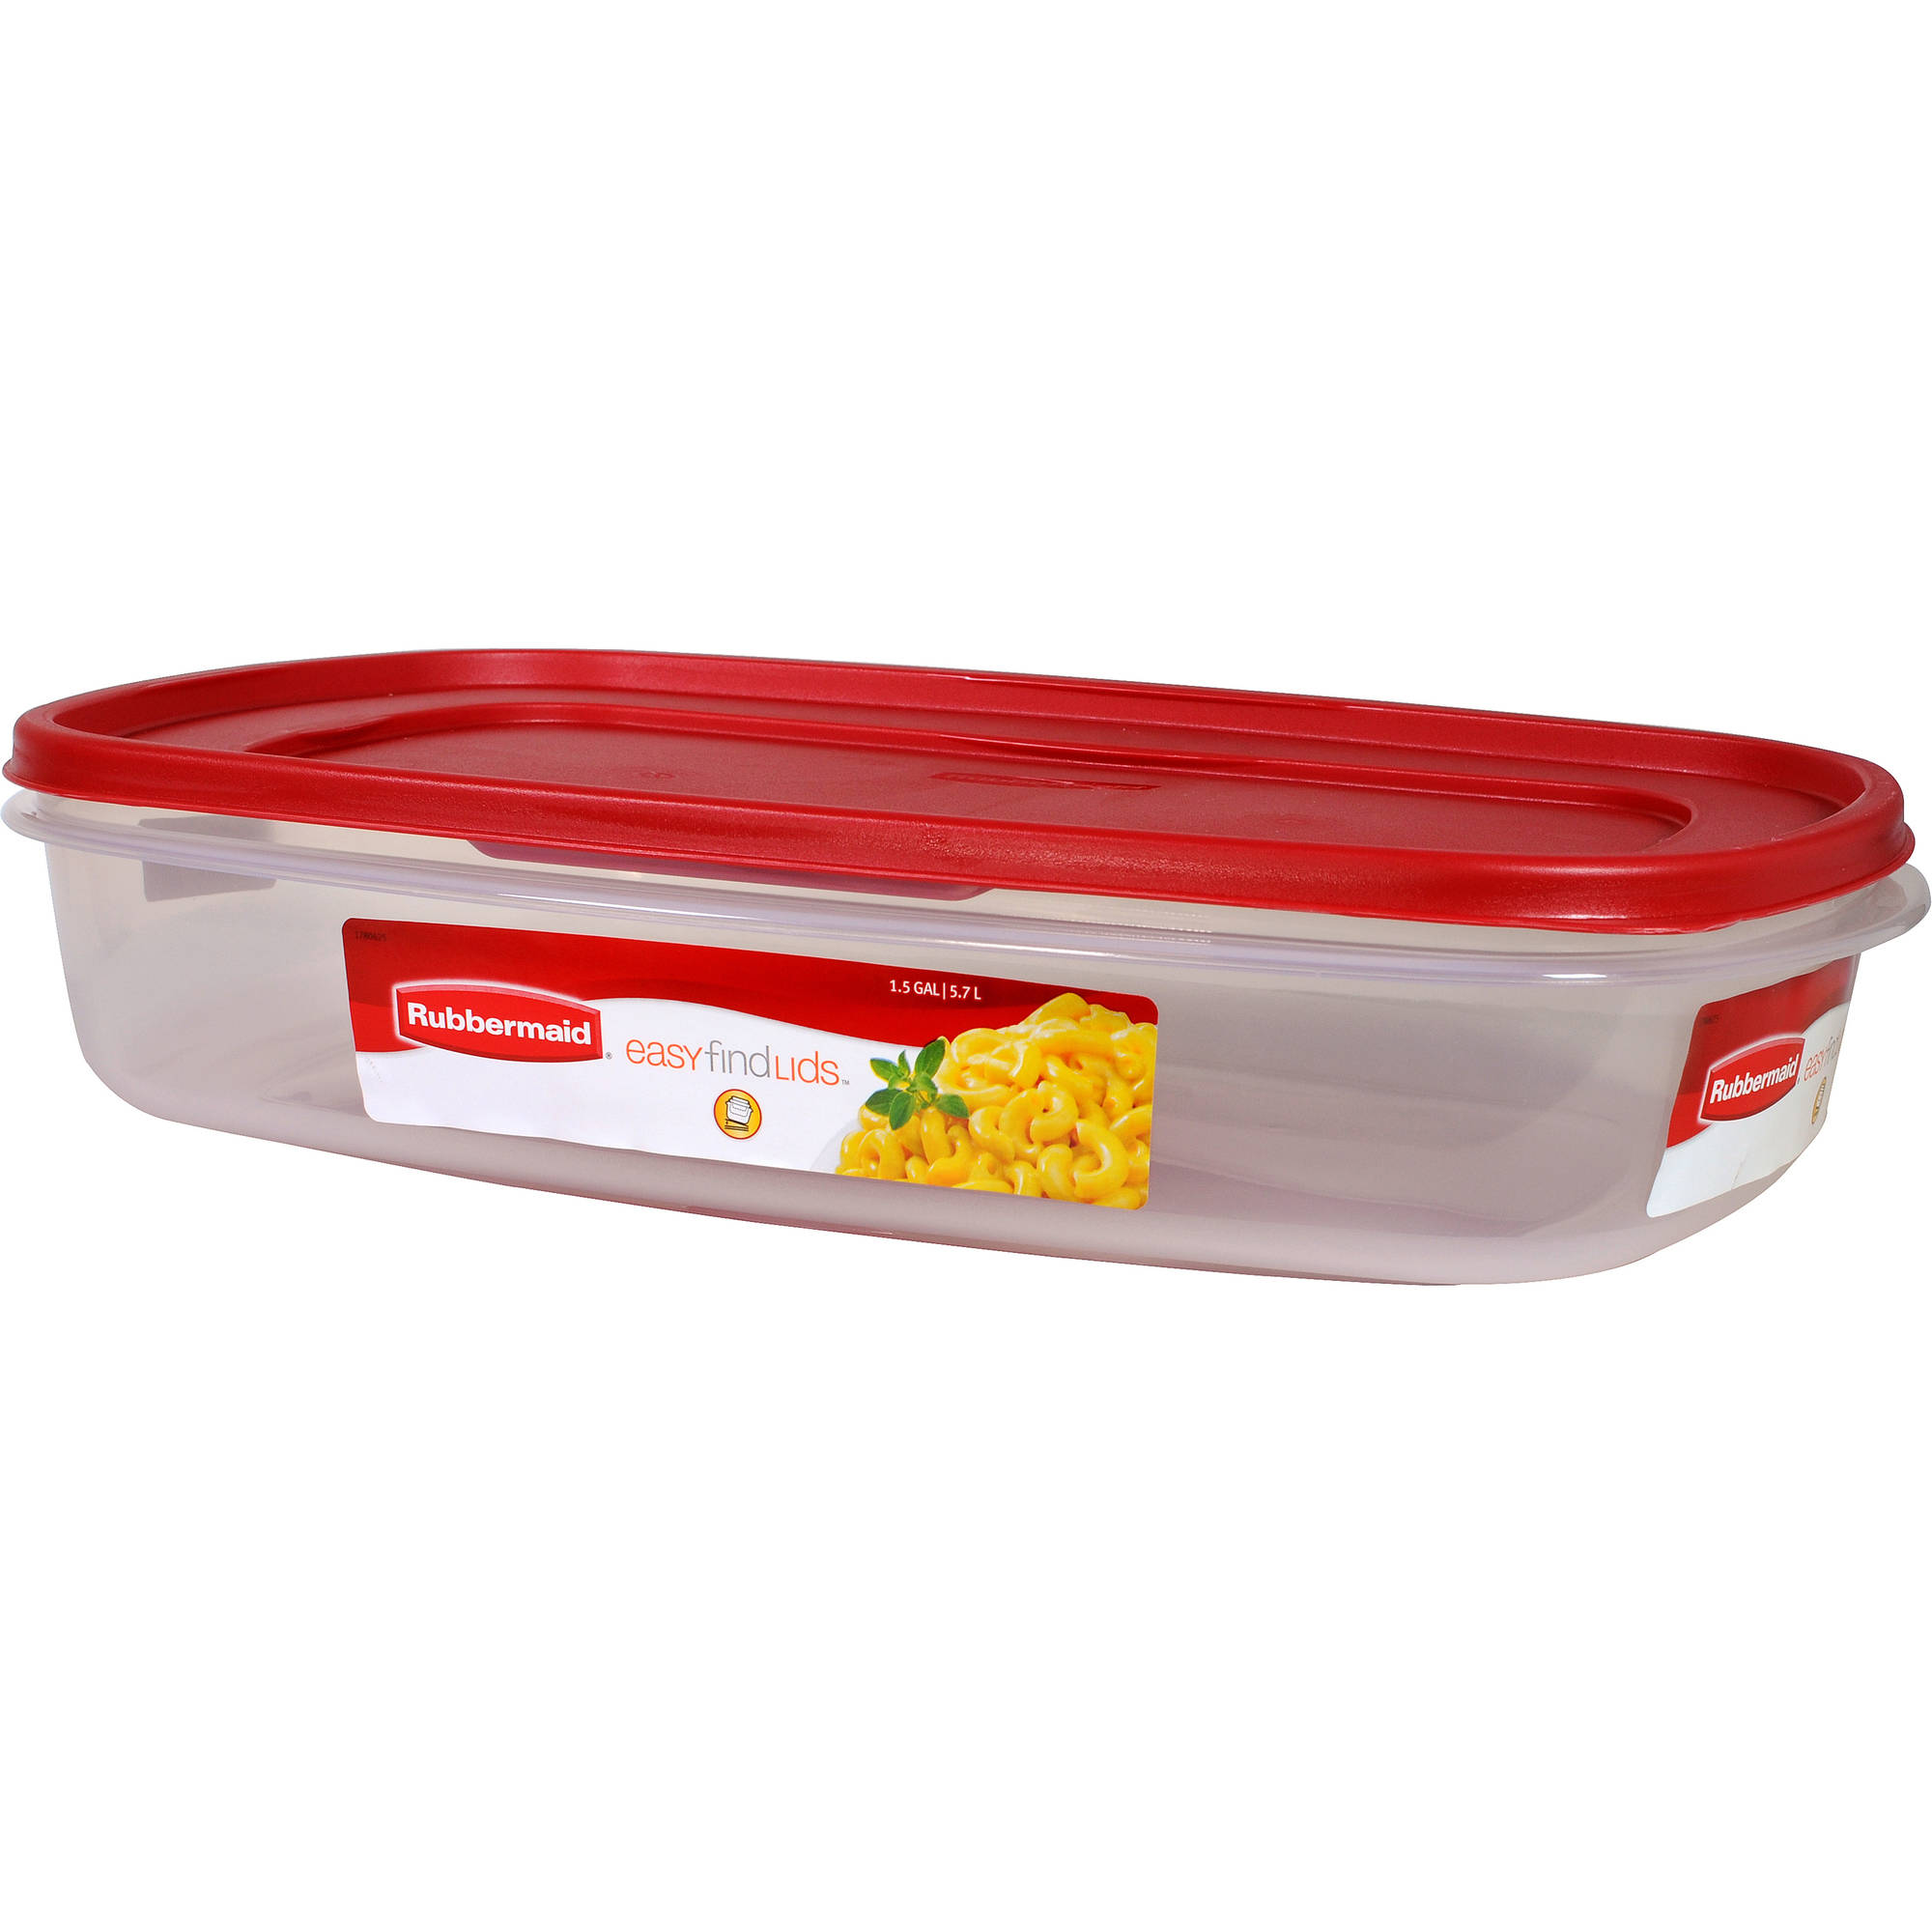 Newell Rubbermaid Rubbermaid Easy Find Lids Food Storage Container